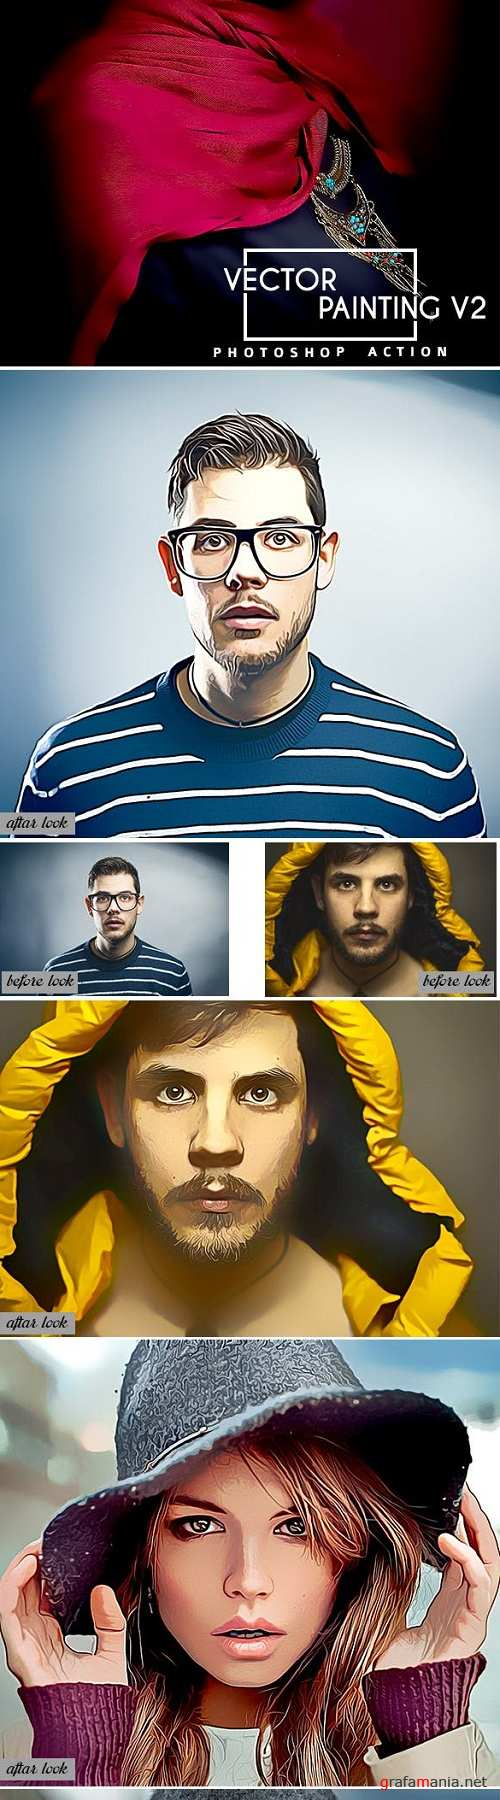 Vector Painting V2 Photoshop Action 23098826